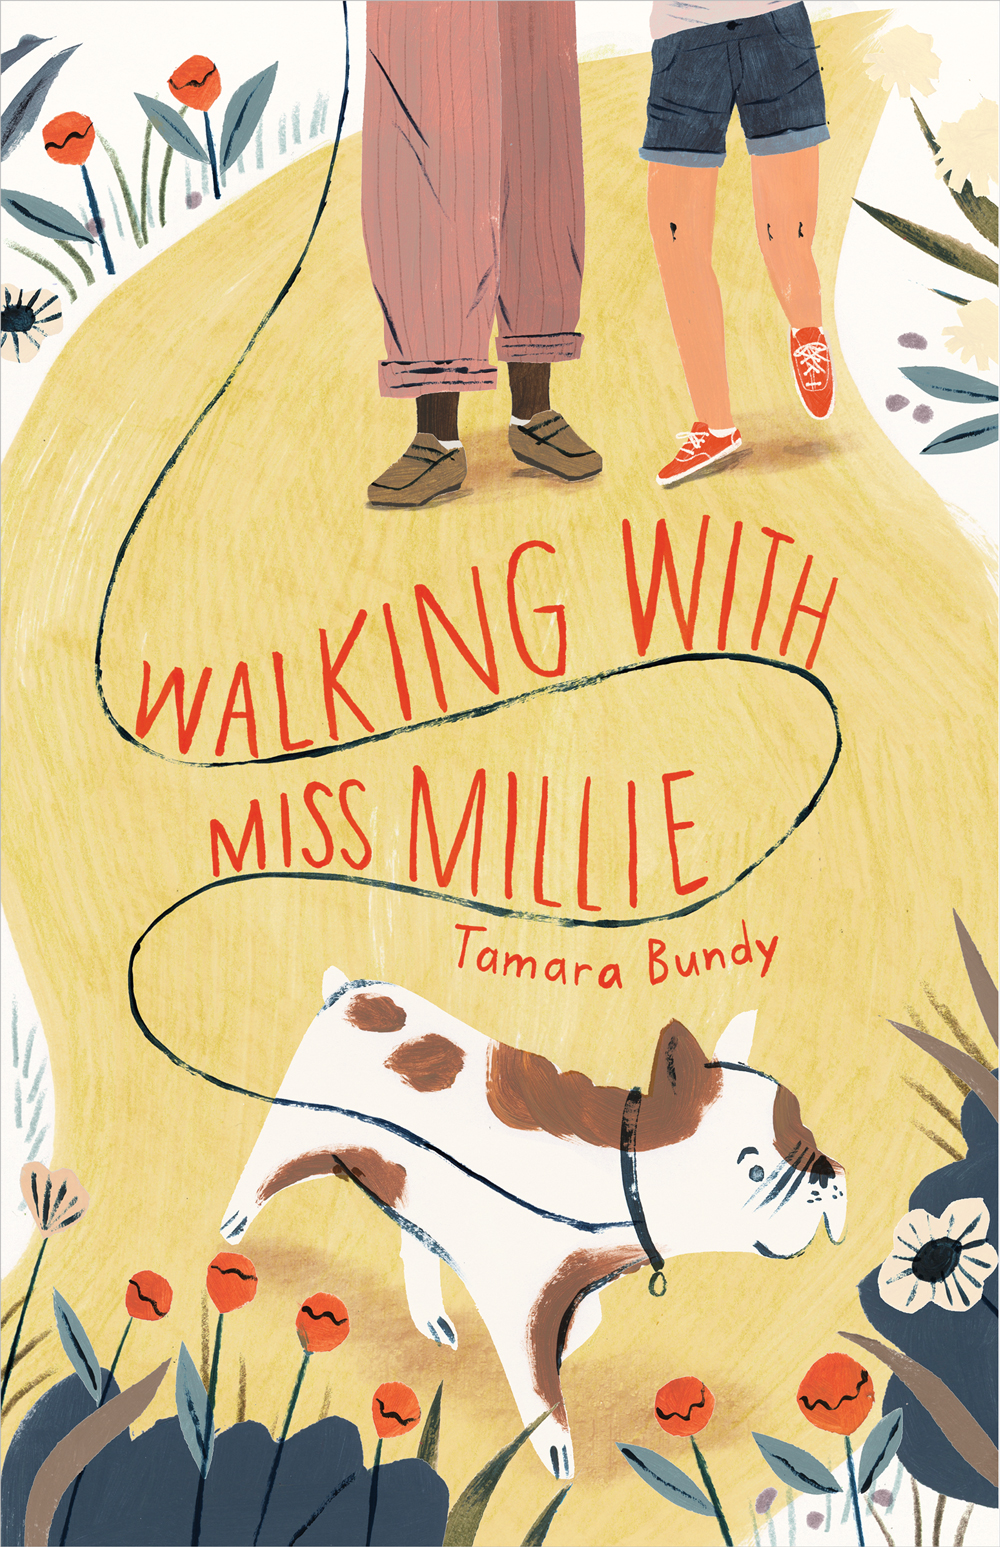 walkingwithmissmillie_coverart_bookcover_penelopedullaghan.jpg